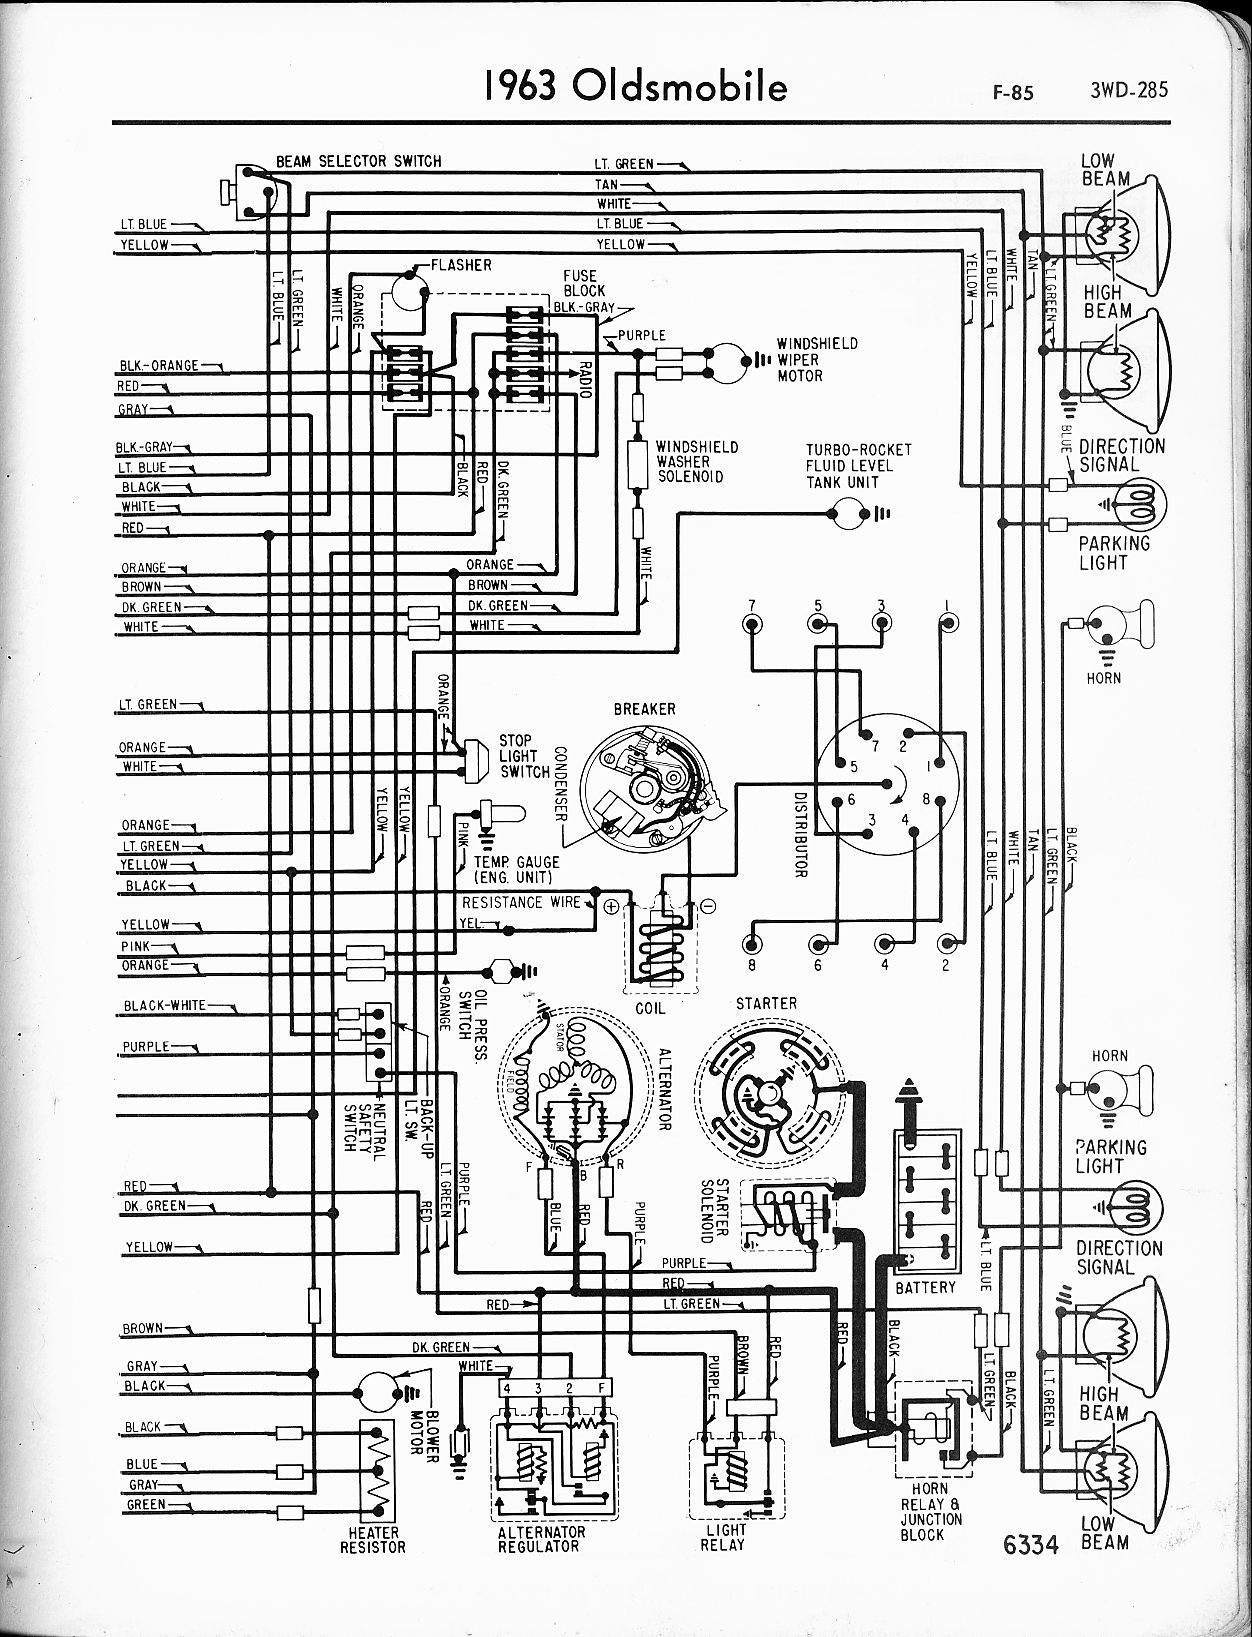 Wiring Diagrams 1998 Aurora V8 Books Of Diagram 98 Olds Oldsmobile The Old Car Manual Project Rh Oldcarmanualproject Com